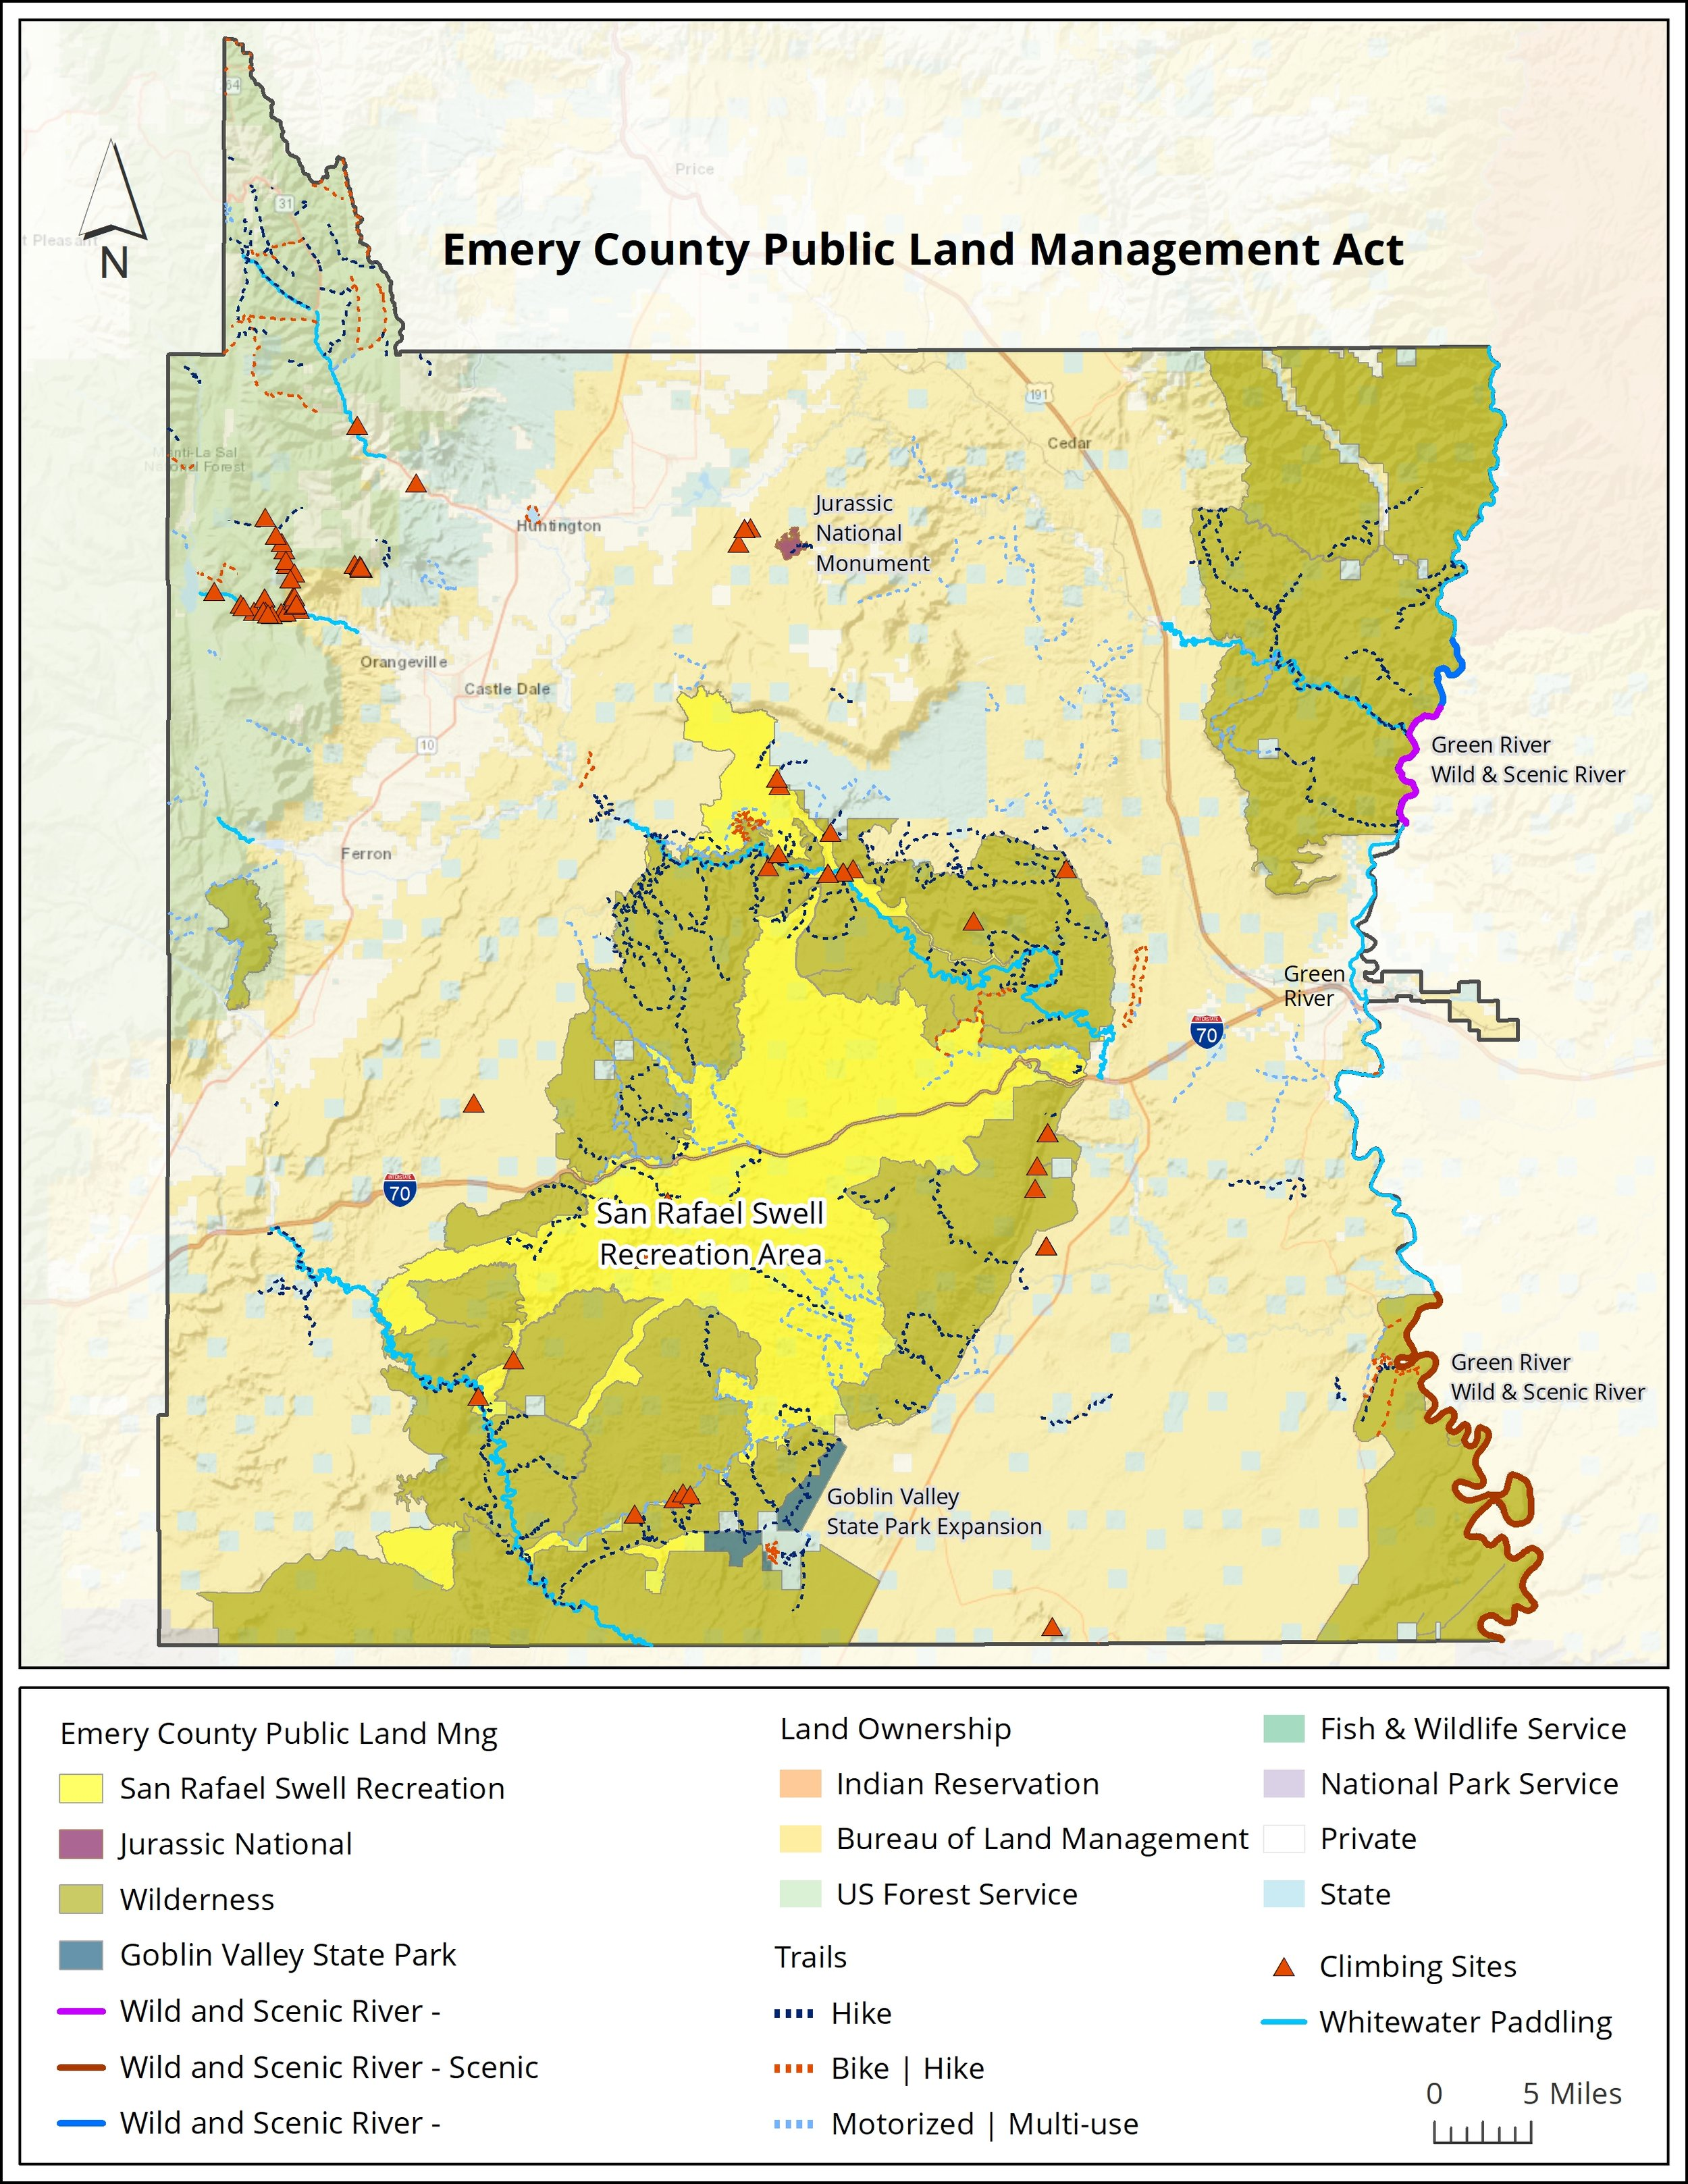 Emery County Public Land Management Act